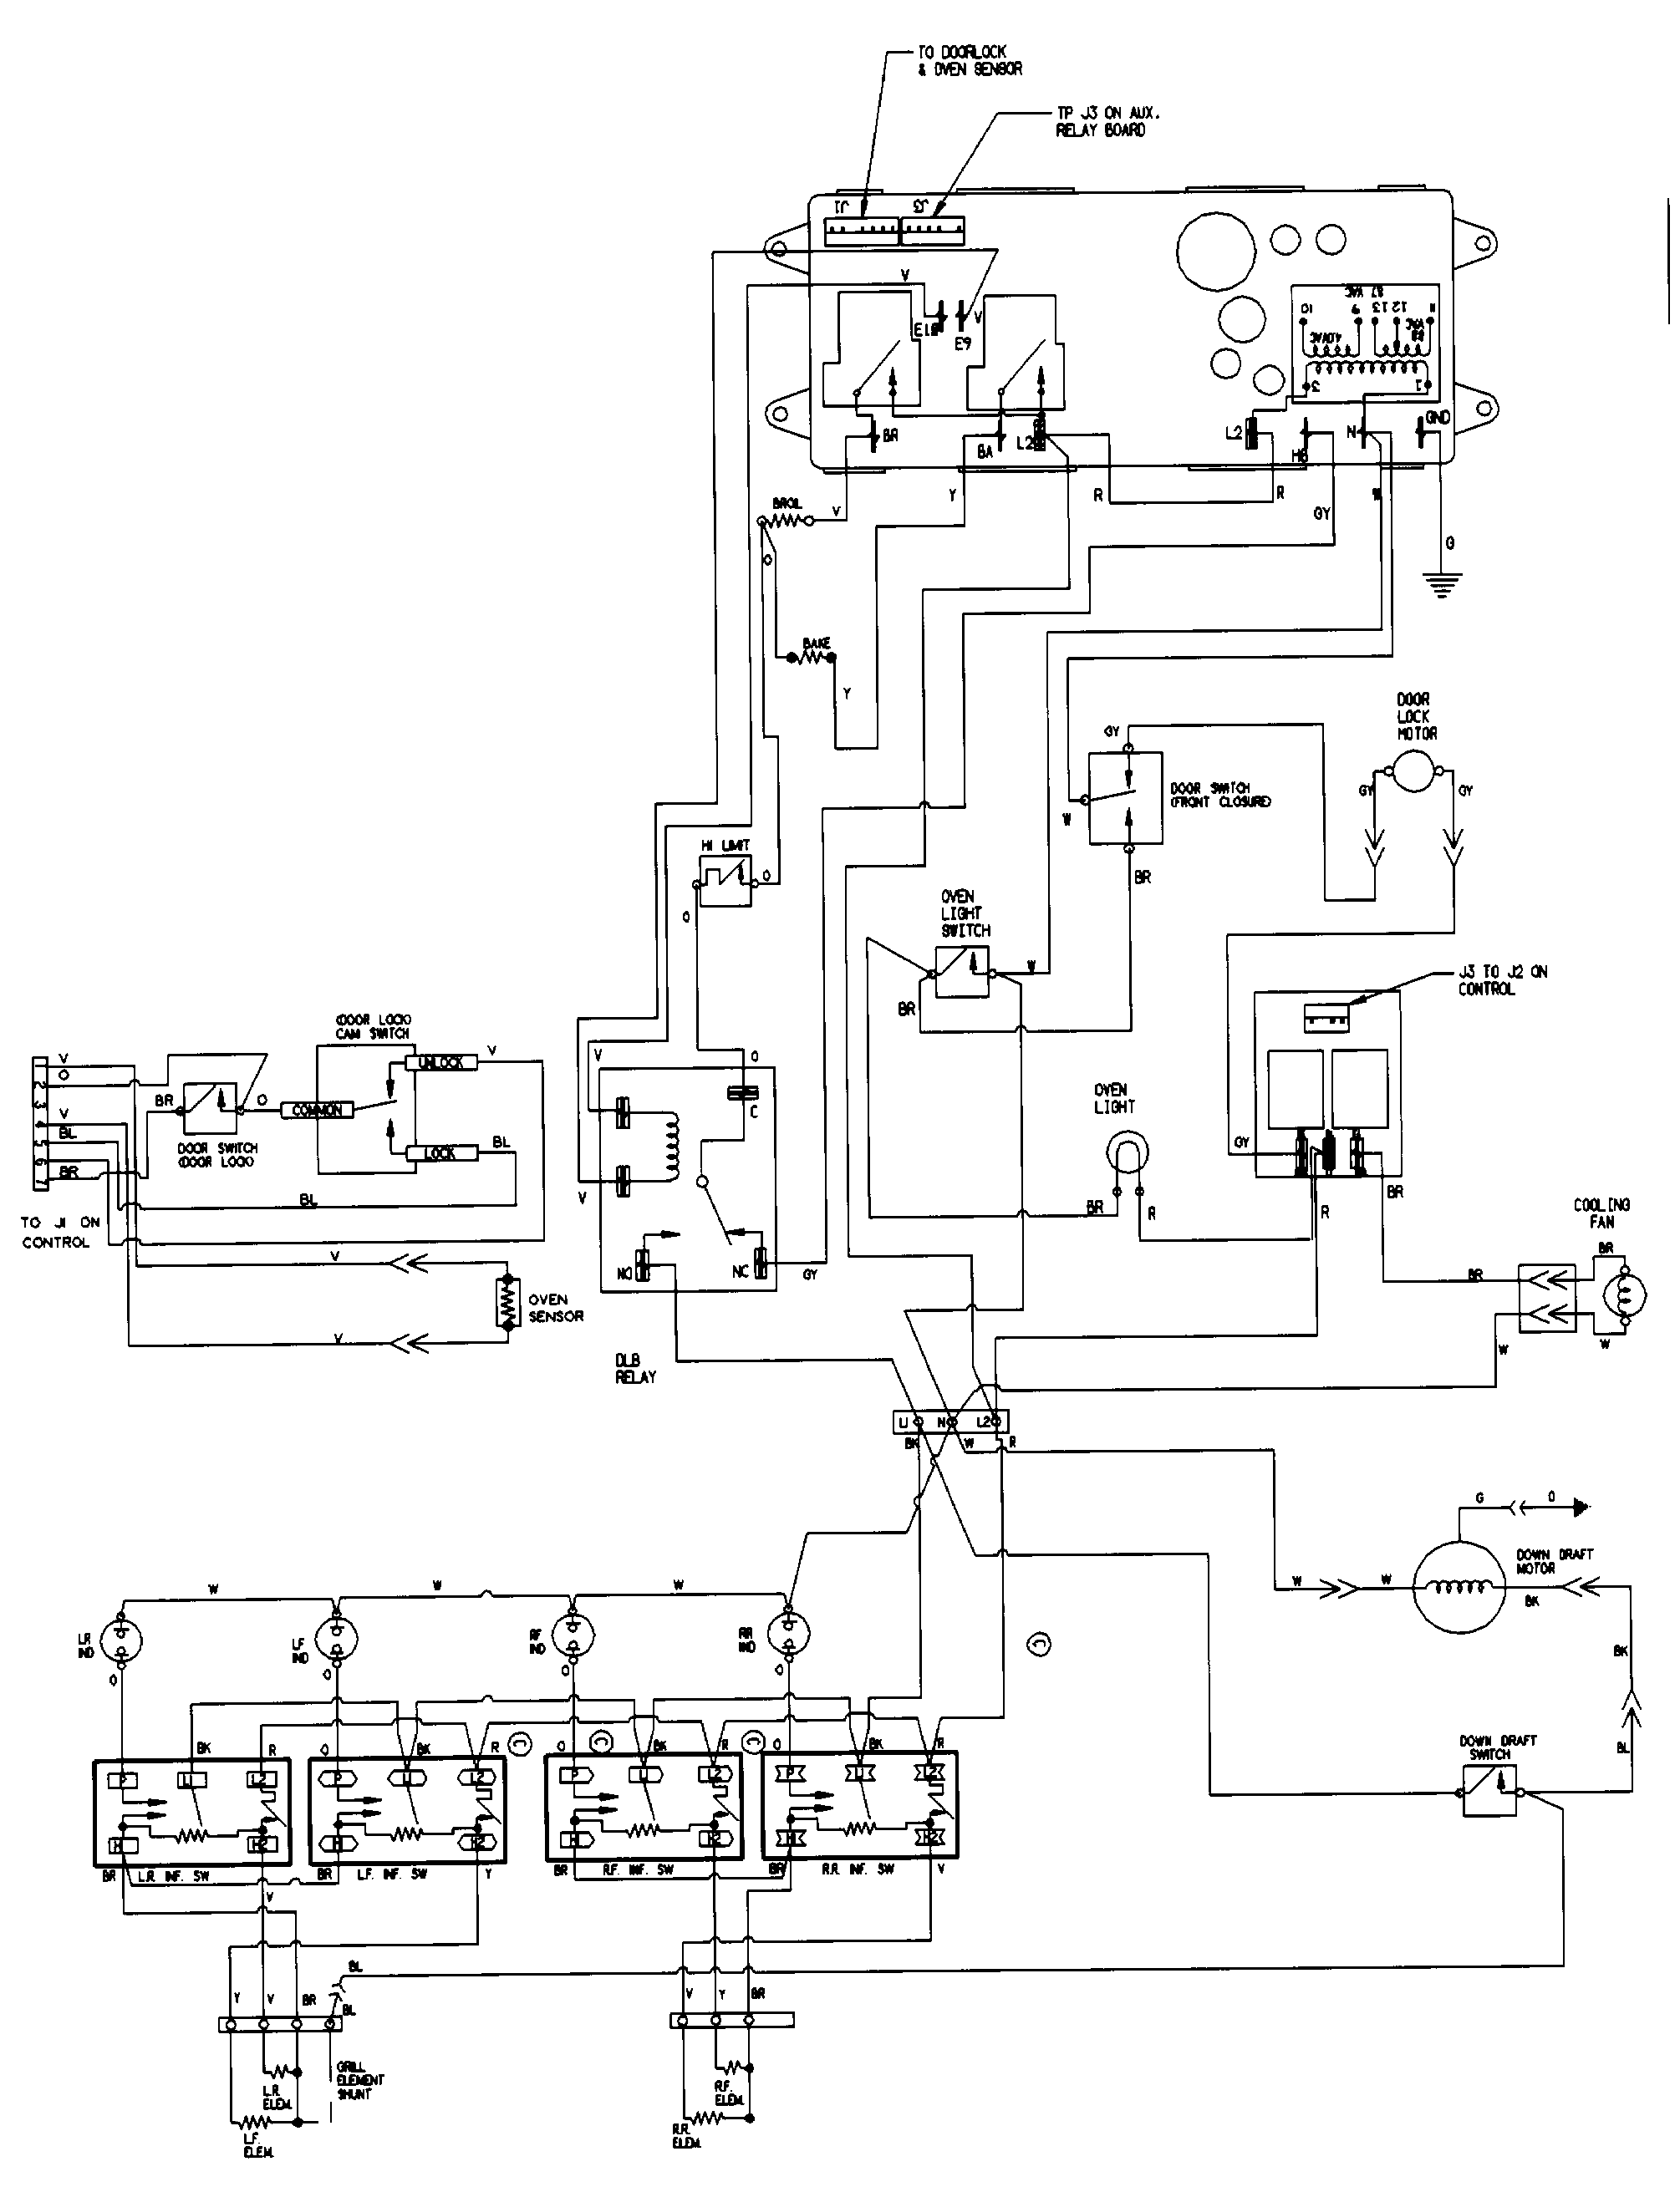 Wiring Diagram For Gas Top Stove